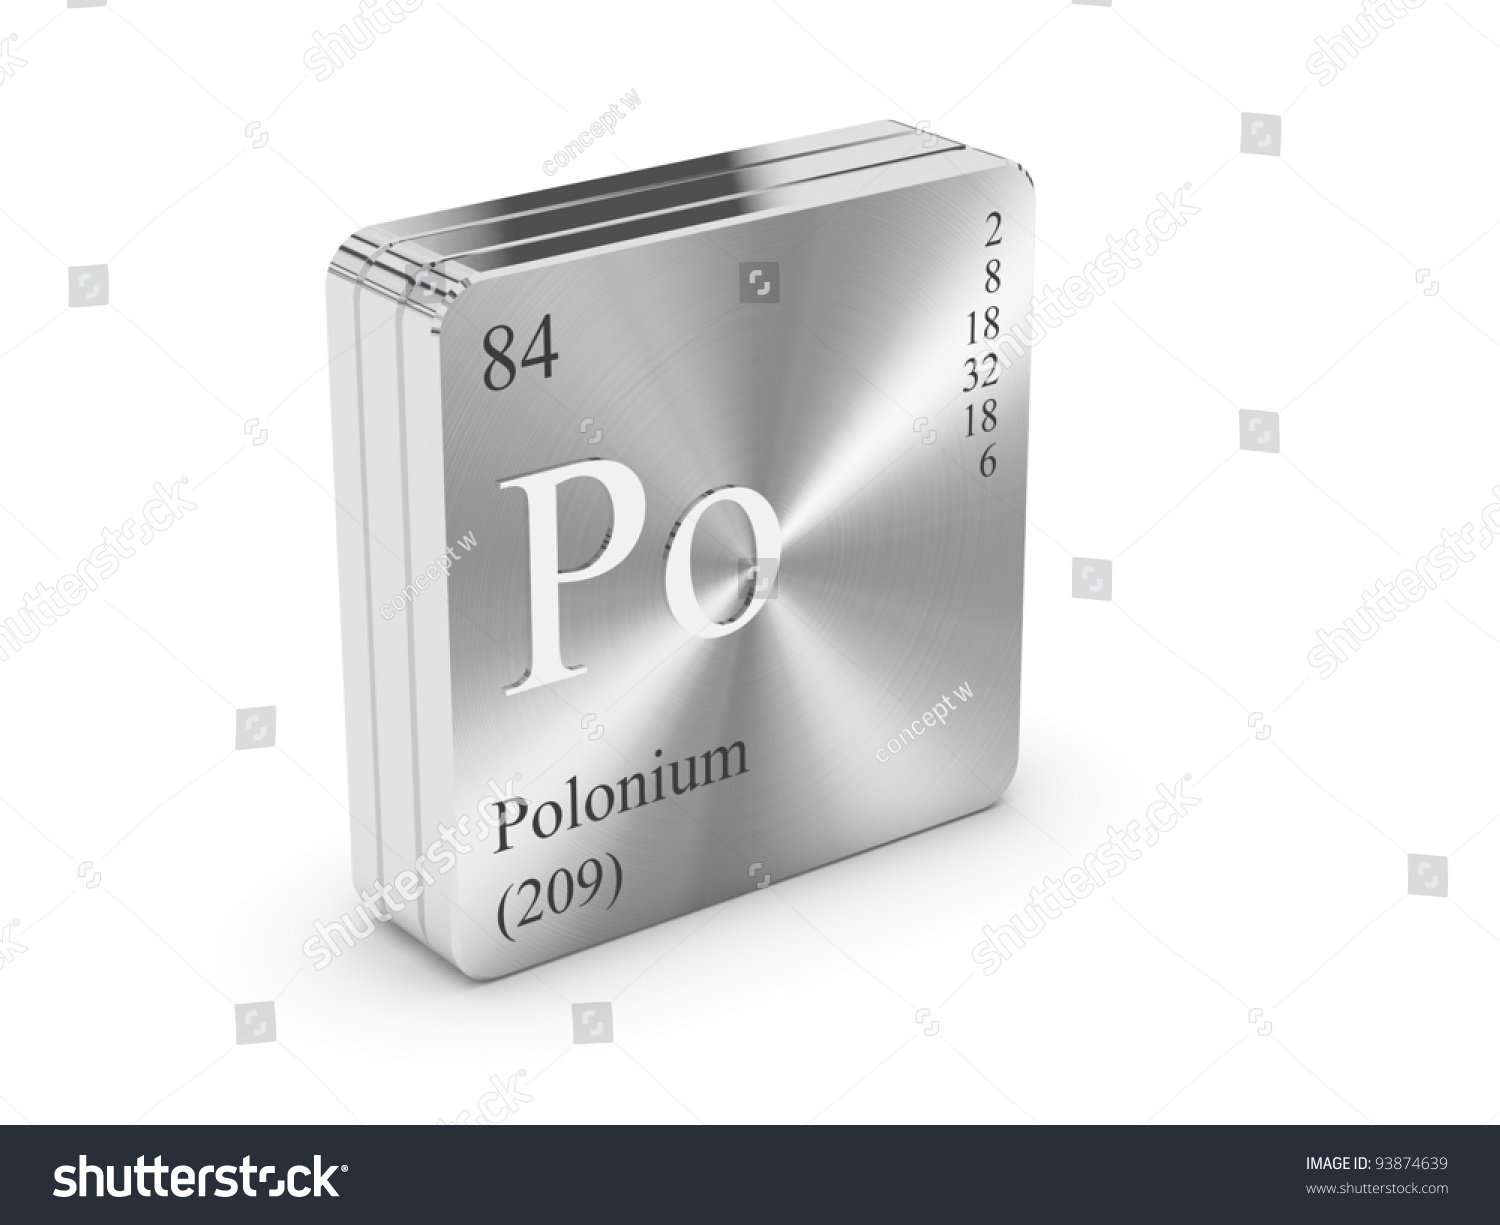 Po element periodic table image collections periodic table images po element periodic table image collections periodic table images periodic table polonium choice image periodic table gamestrikefo Image collections